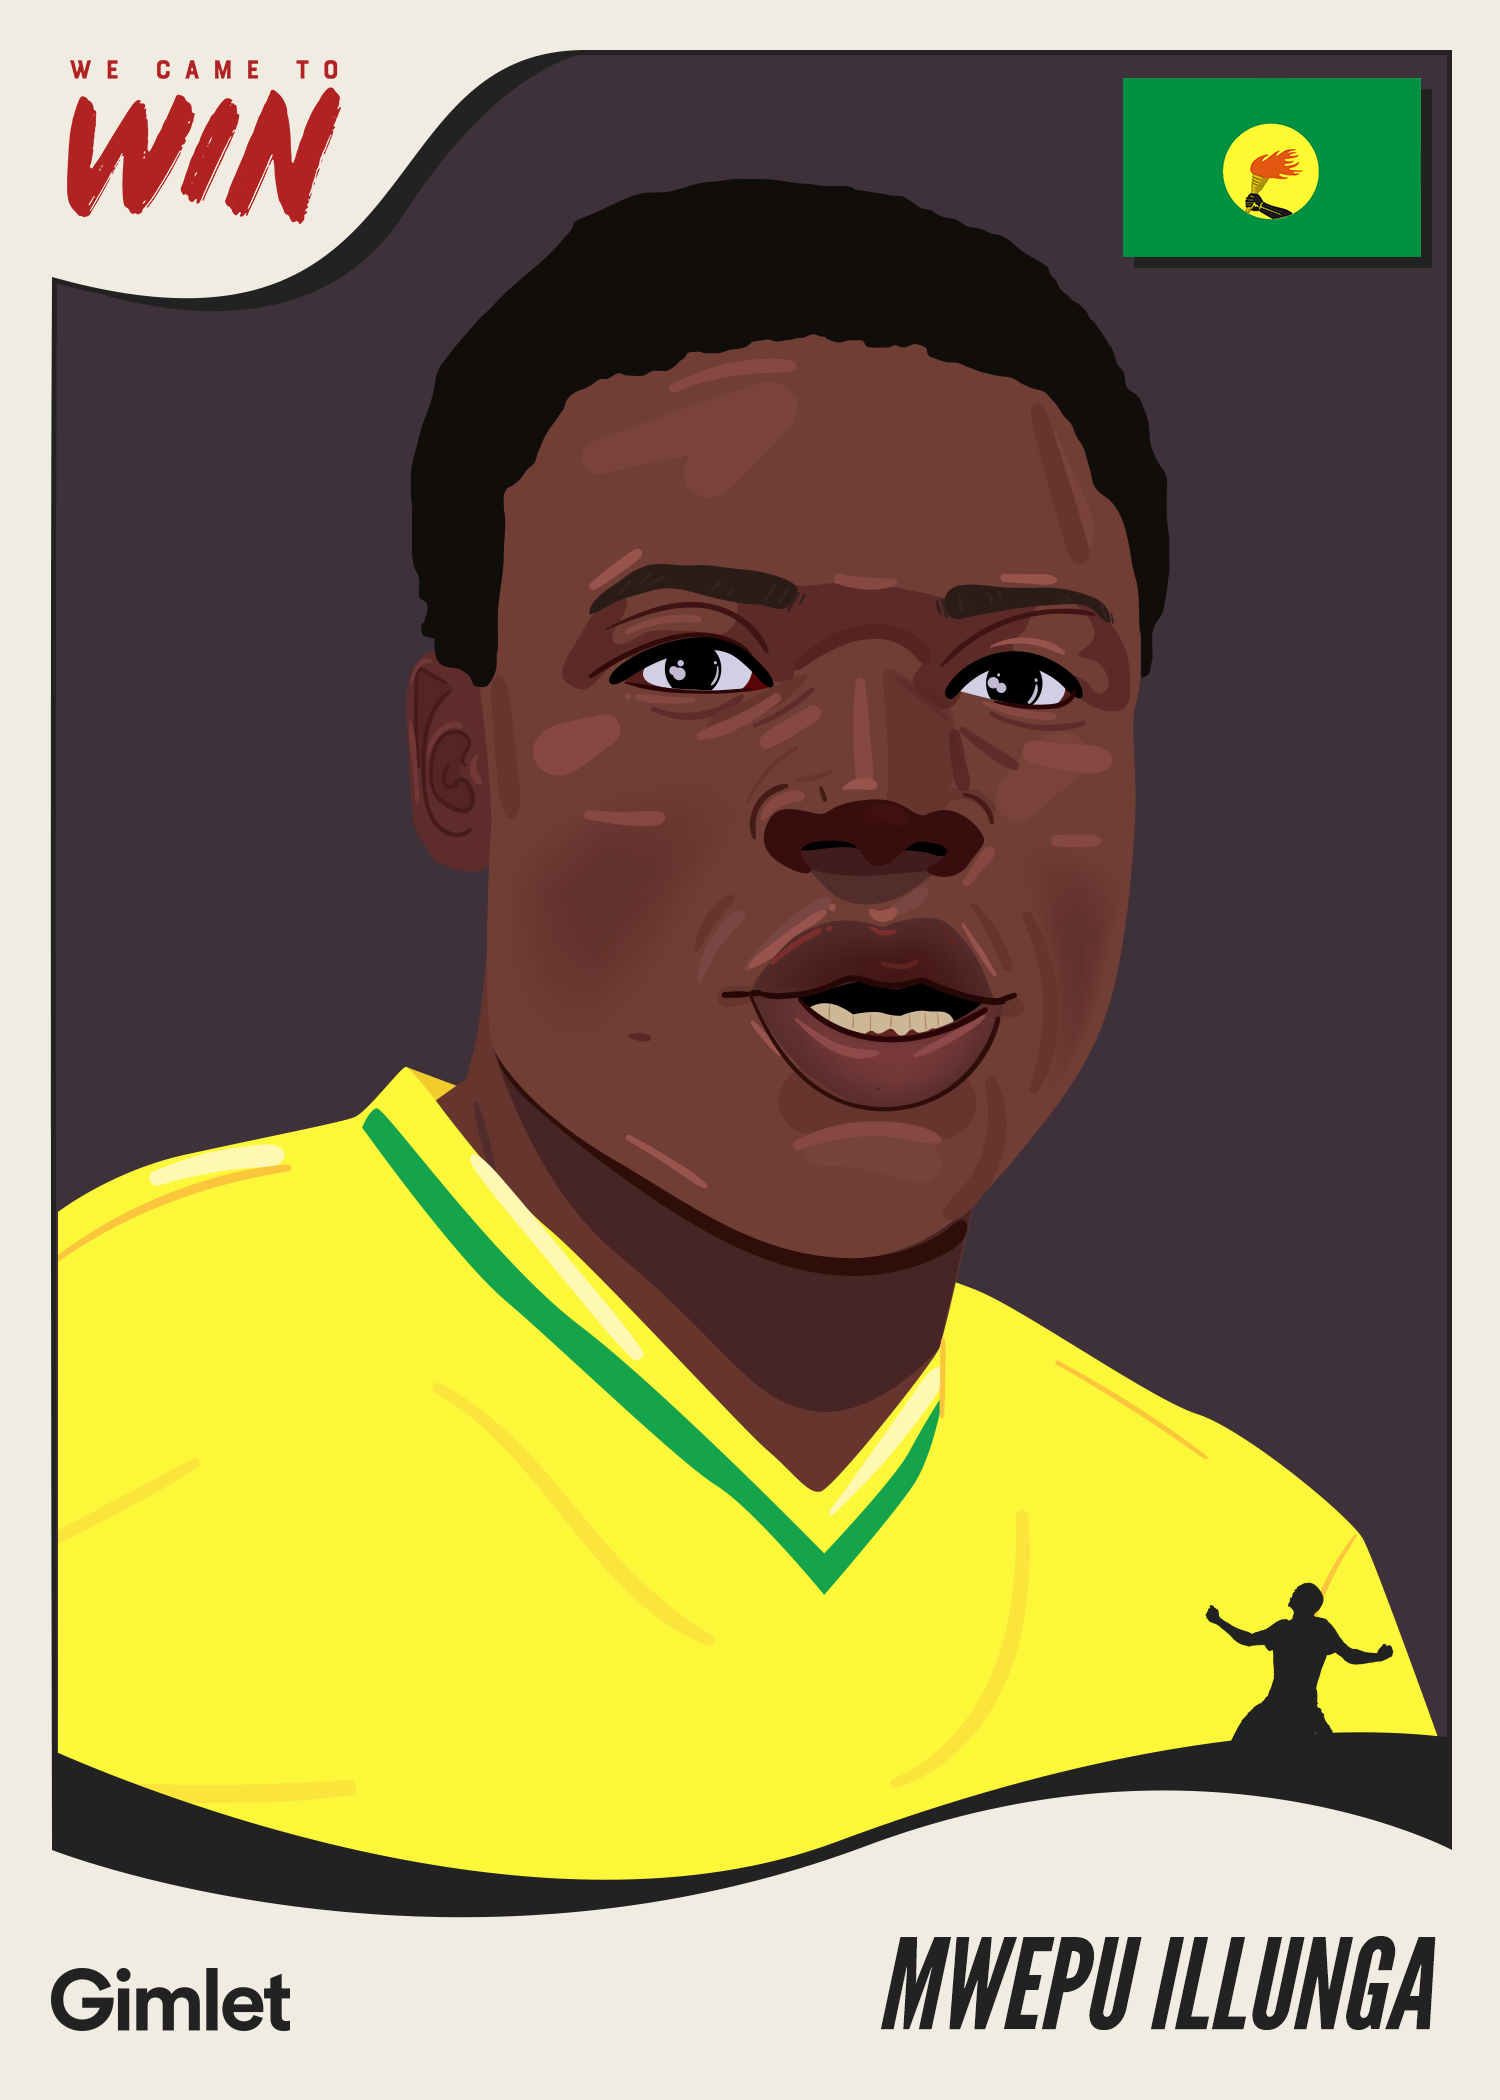 20180424_WCTW-Player-Card-Mwepu-Illunga-mallory-heyer.png